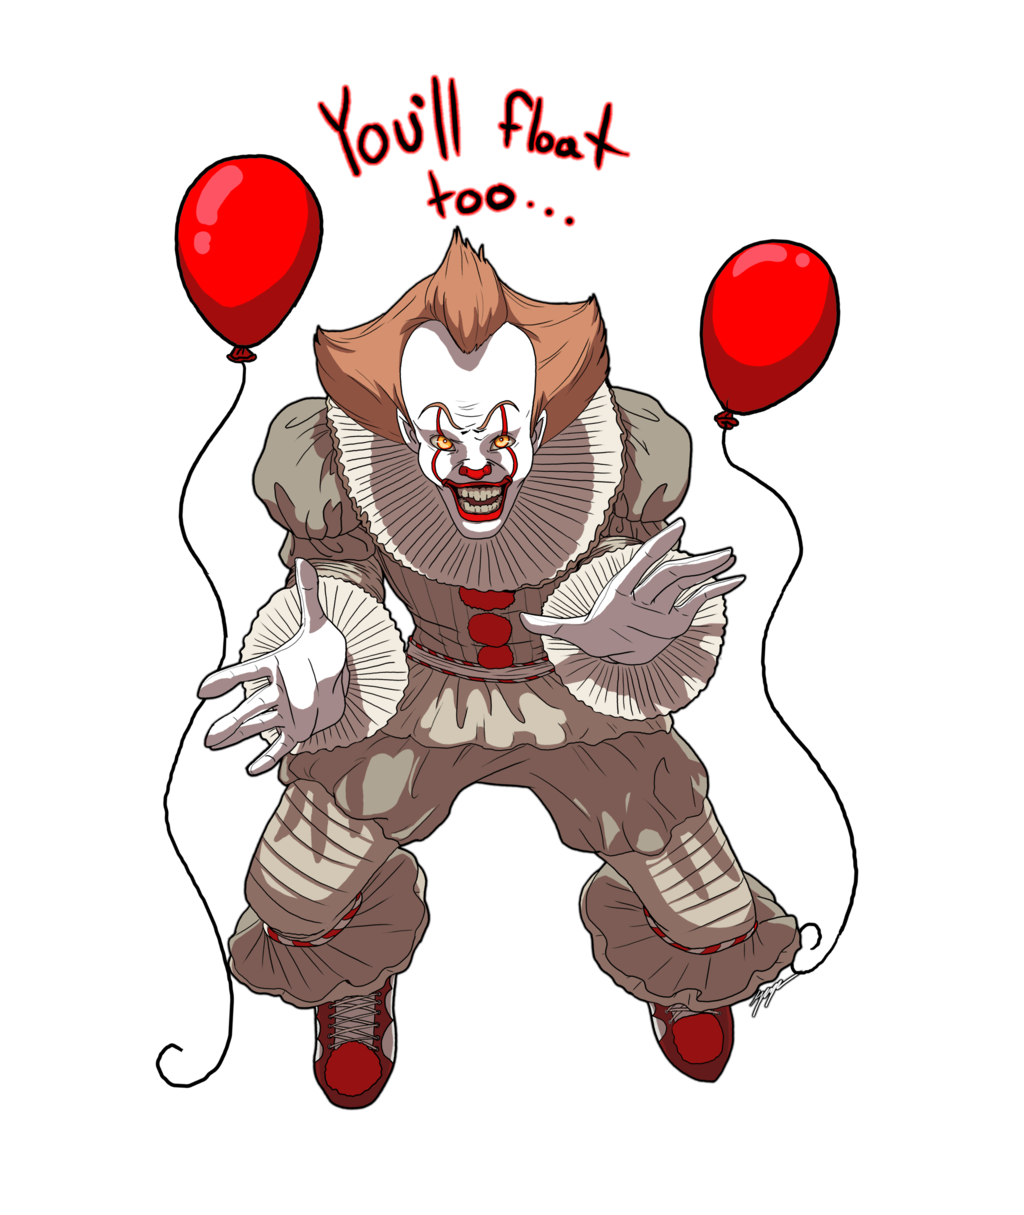 Clown clipart pennywise dancing clown. The by xxcommandershepardxx on